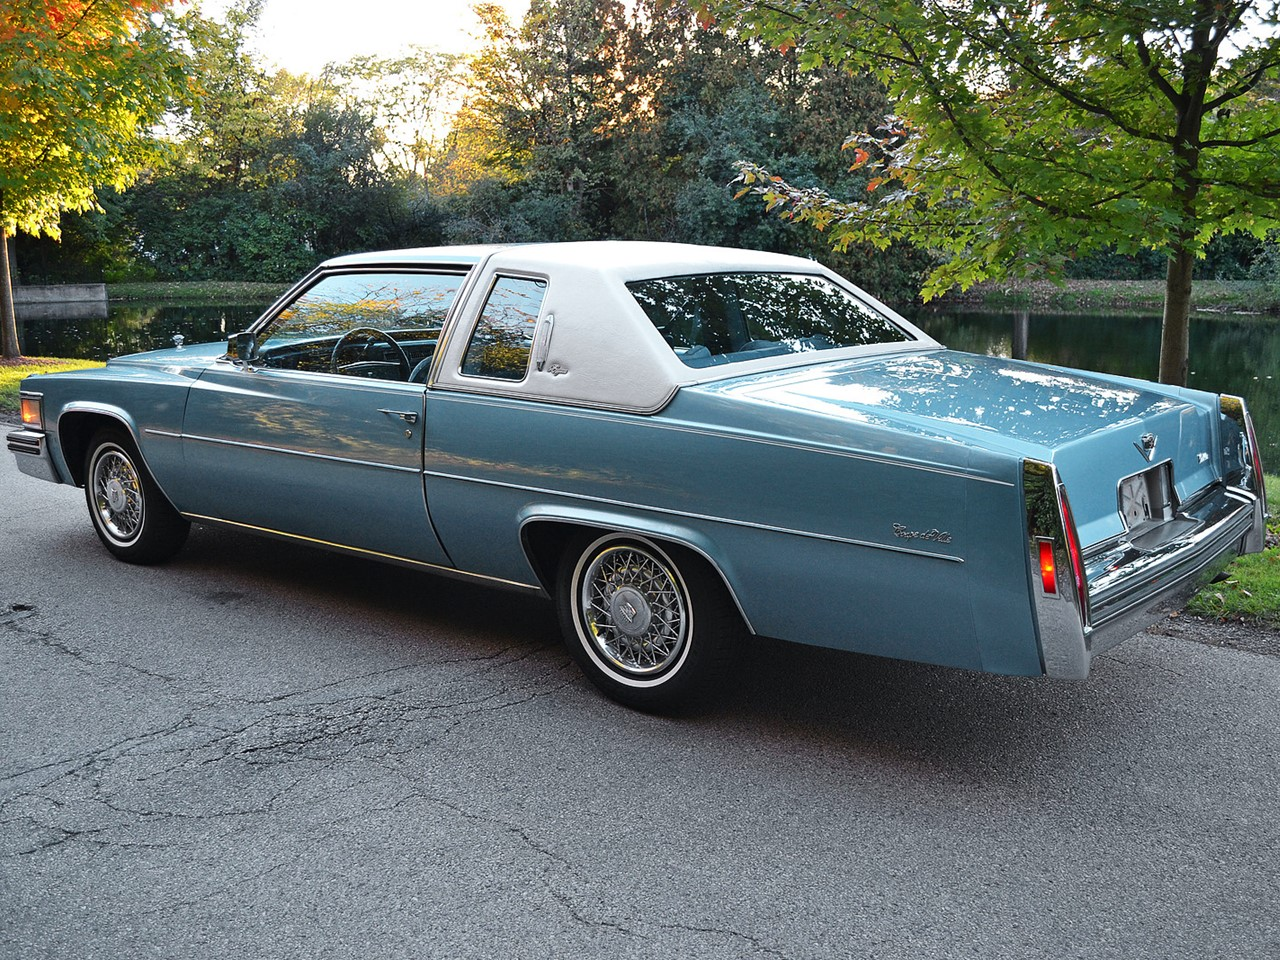 1978 Cadillac DeVille Coupe d'Elegance | NotoriousLuxury